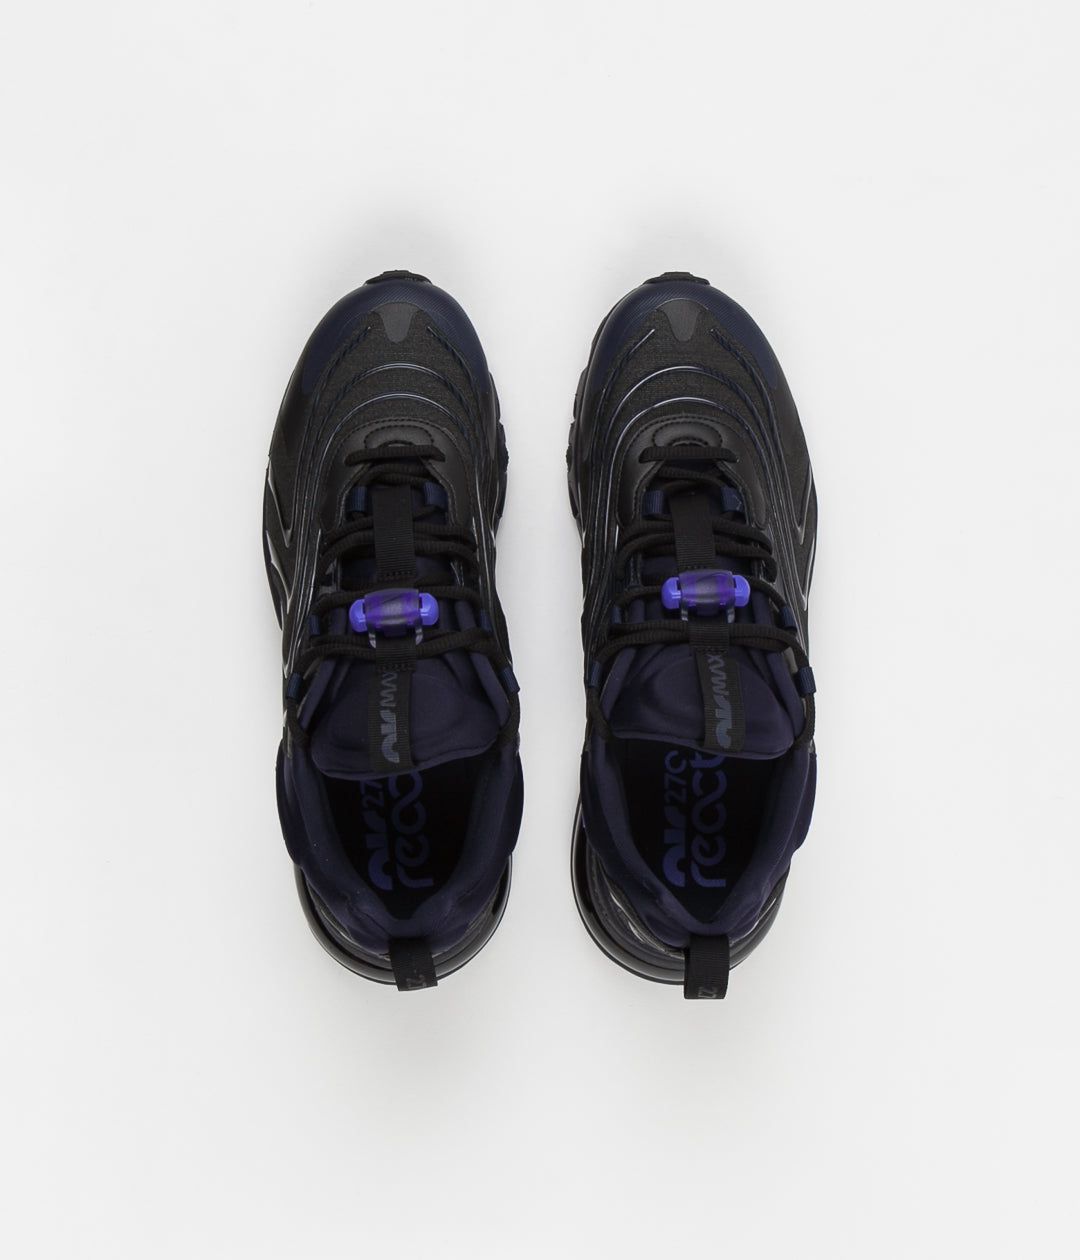 Nike Air Max 270 React Eng Shoes Black Sapphire Obsidian